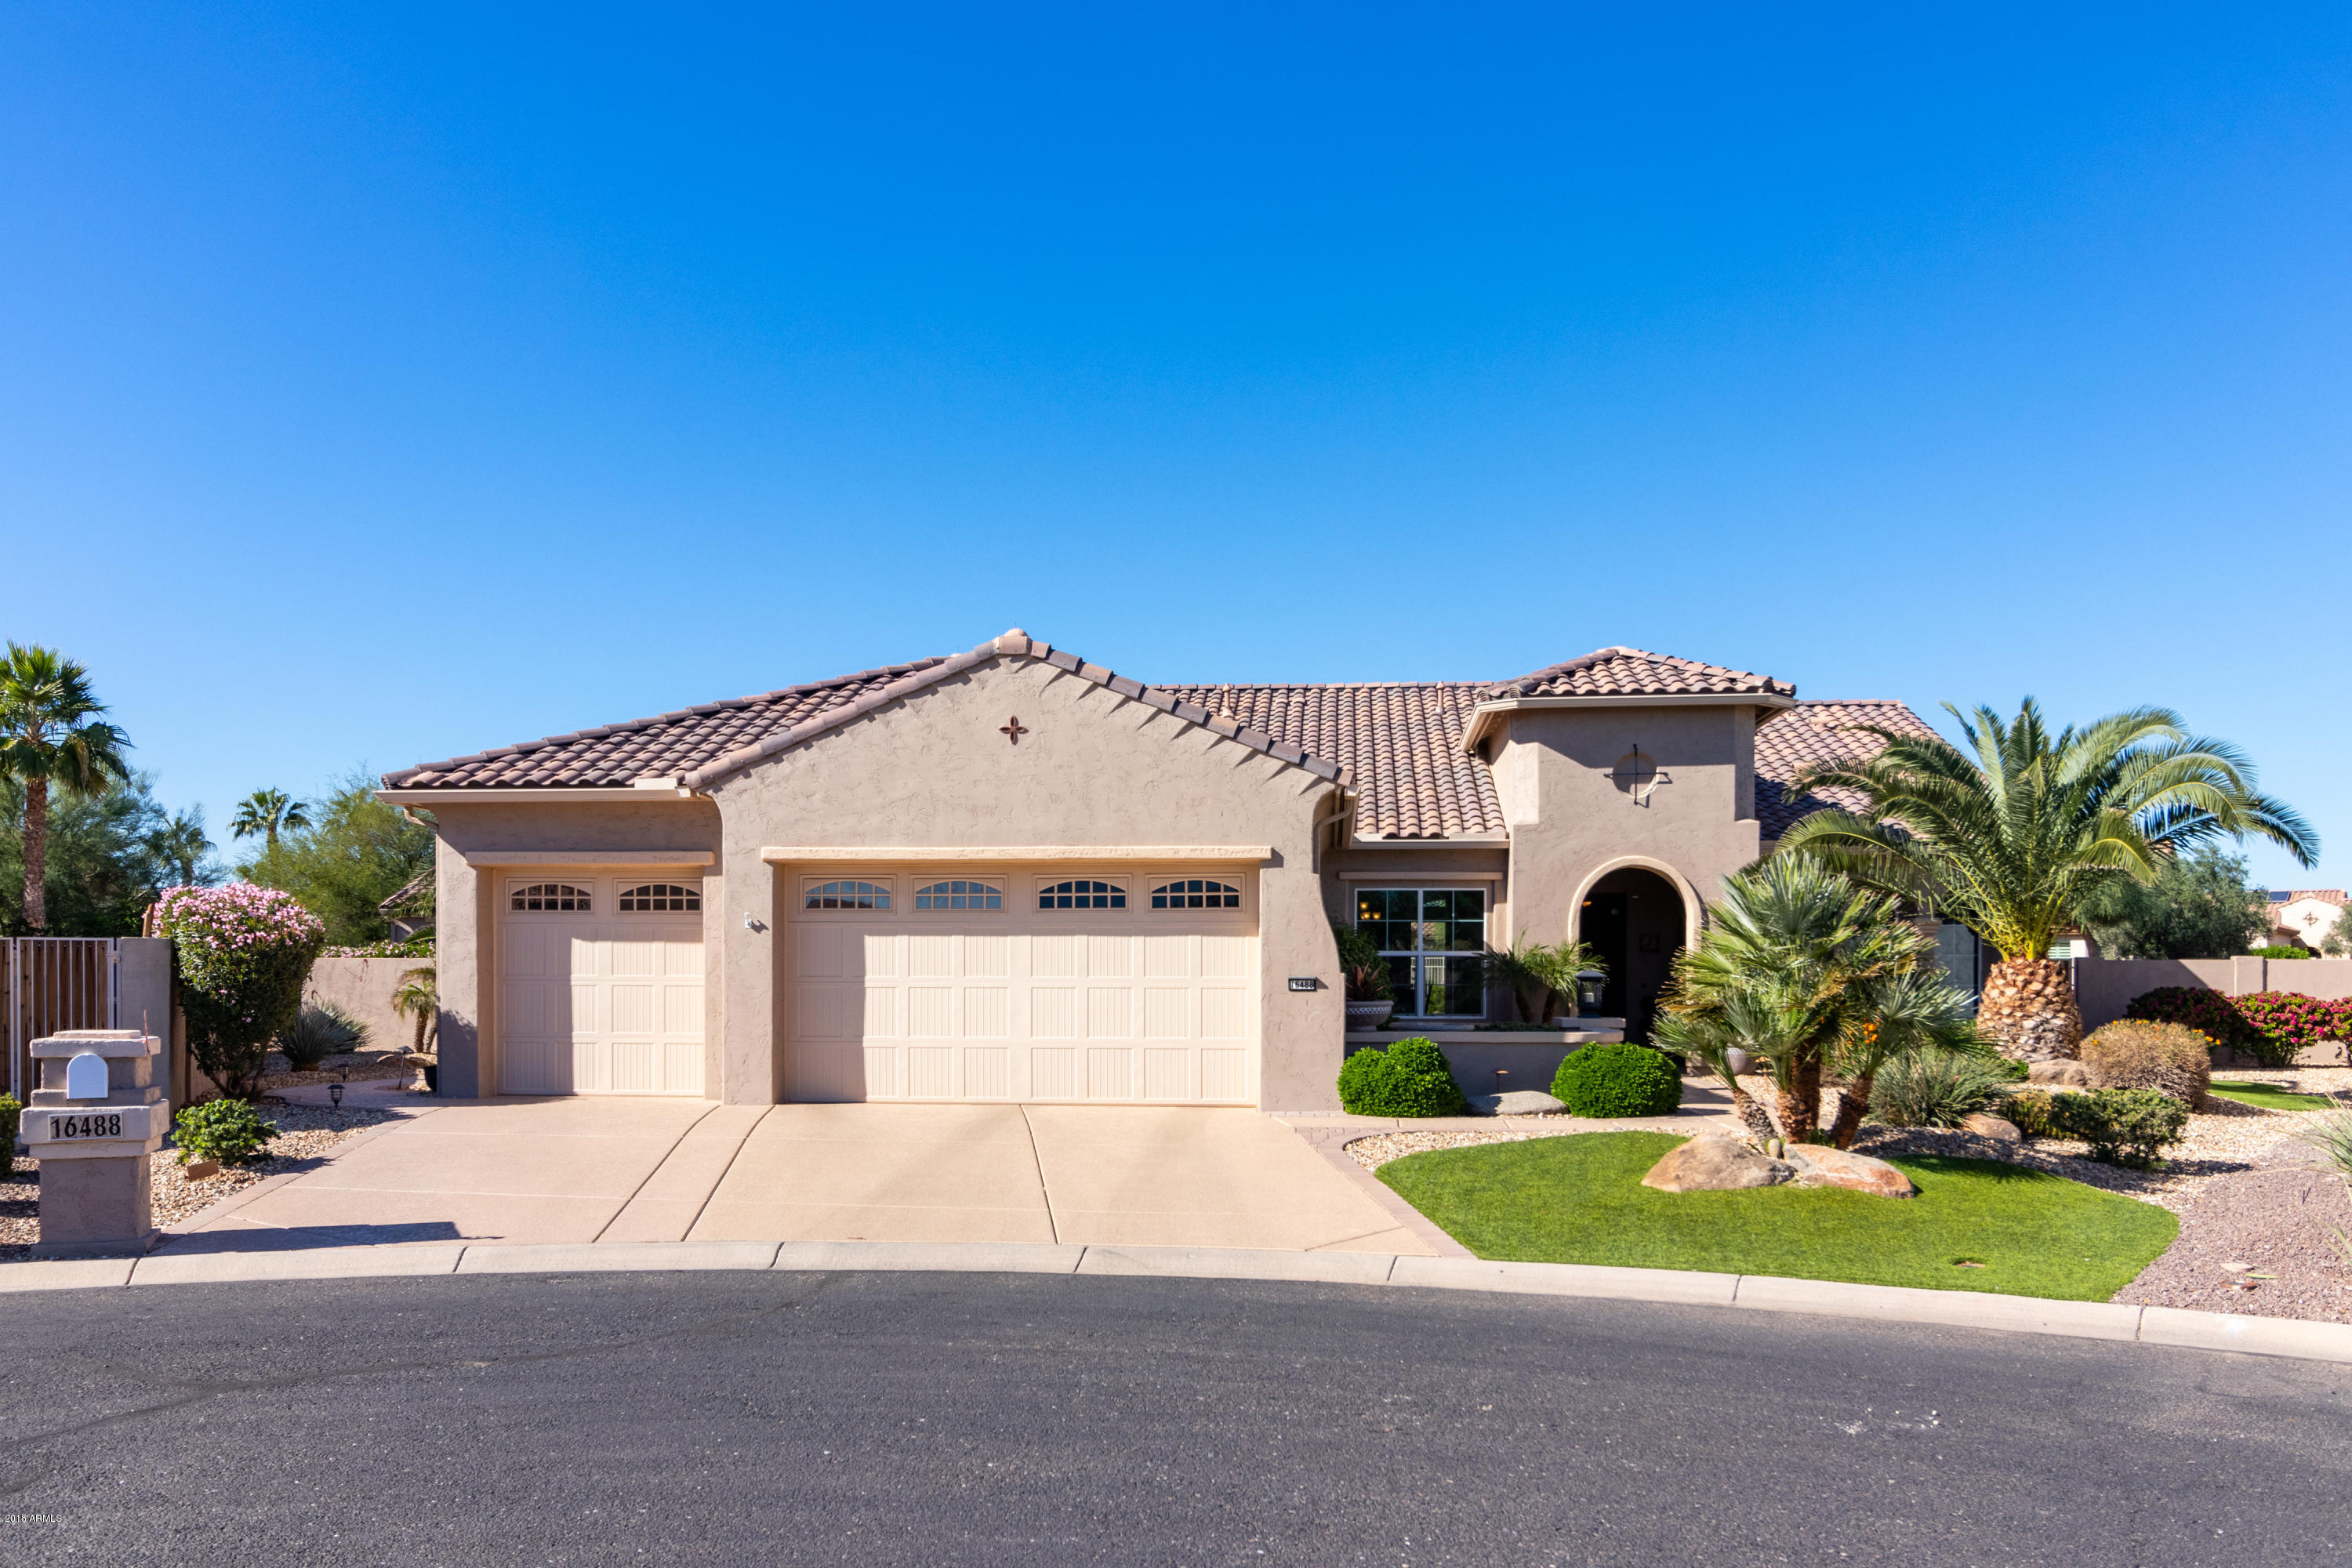 Photo of 16488 W WILSHIRE Drive, Goodyear, AZ 85395